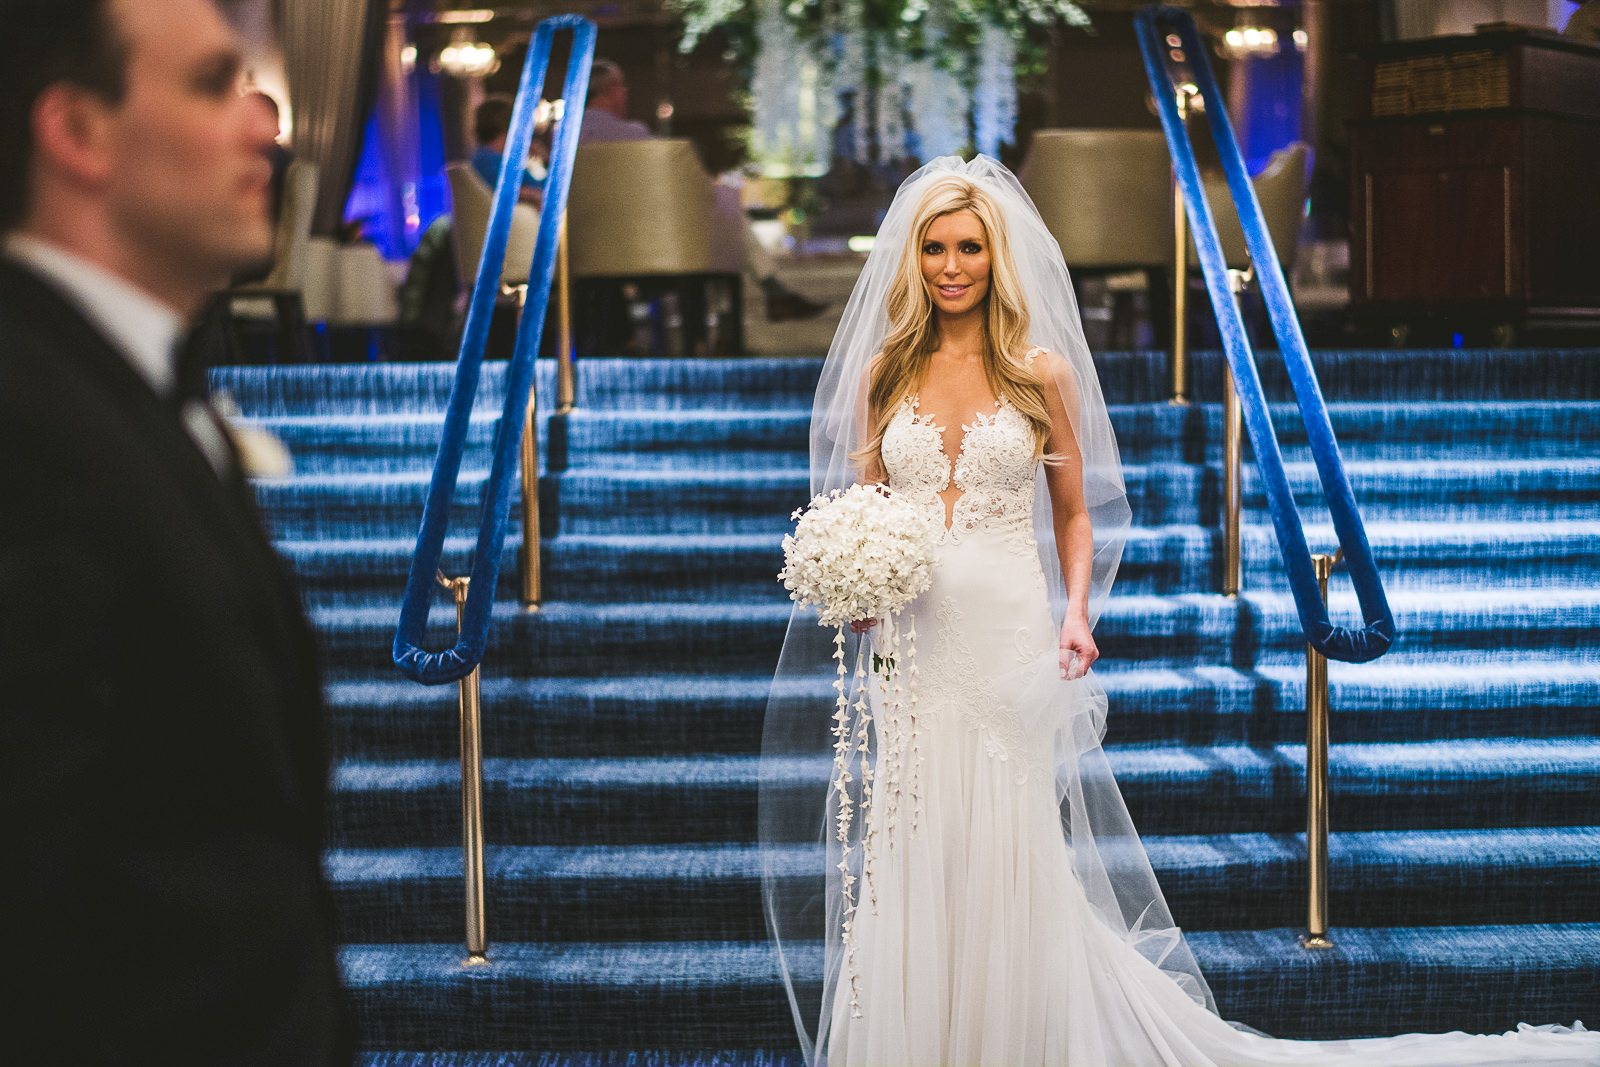 44 drake chicago wedding photos - Kayla + Terry // Drake Hotel Chicago Wedding Photos